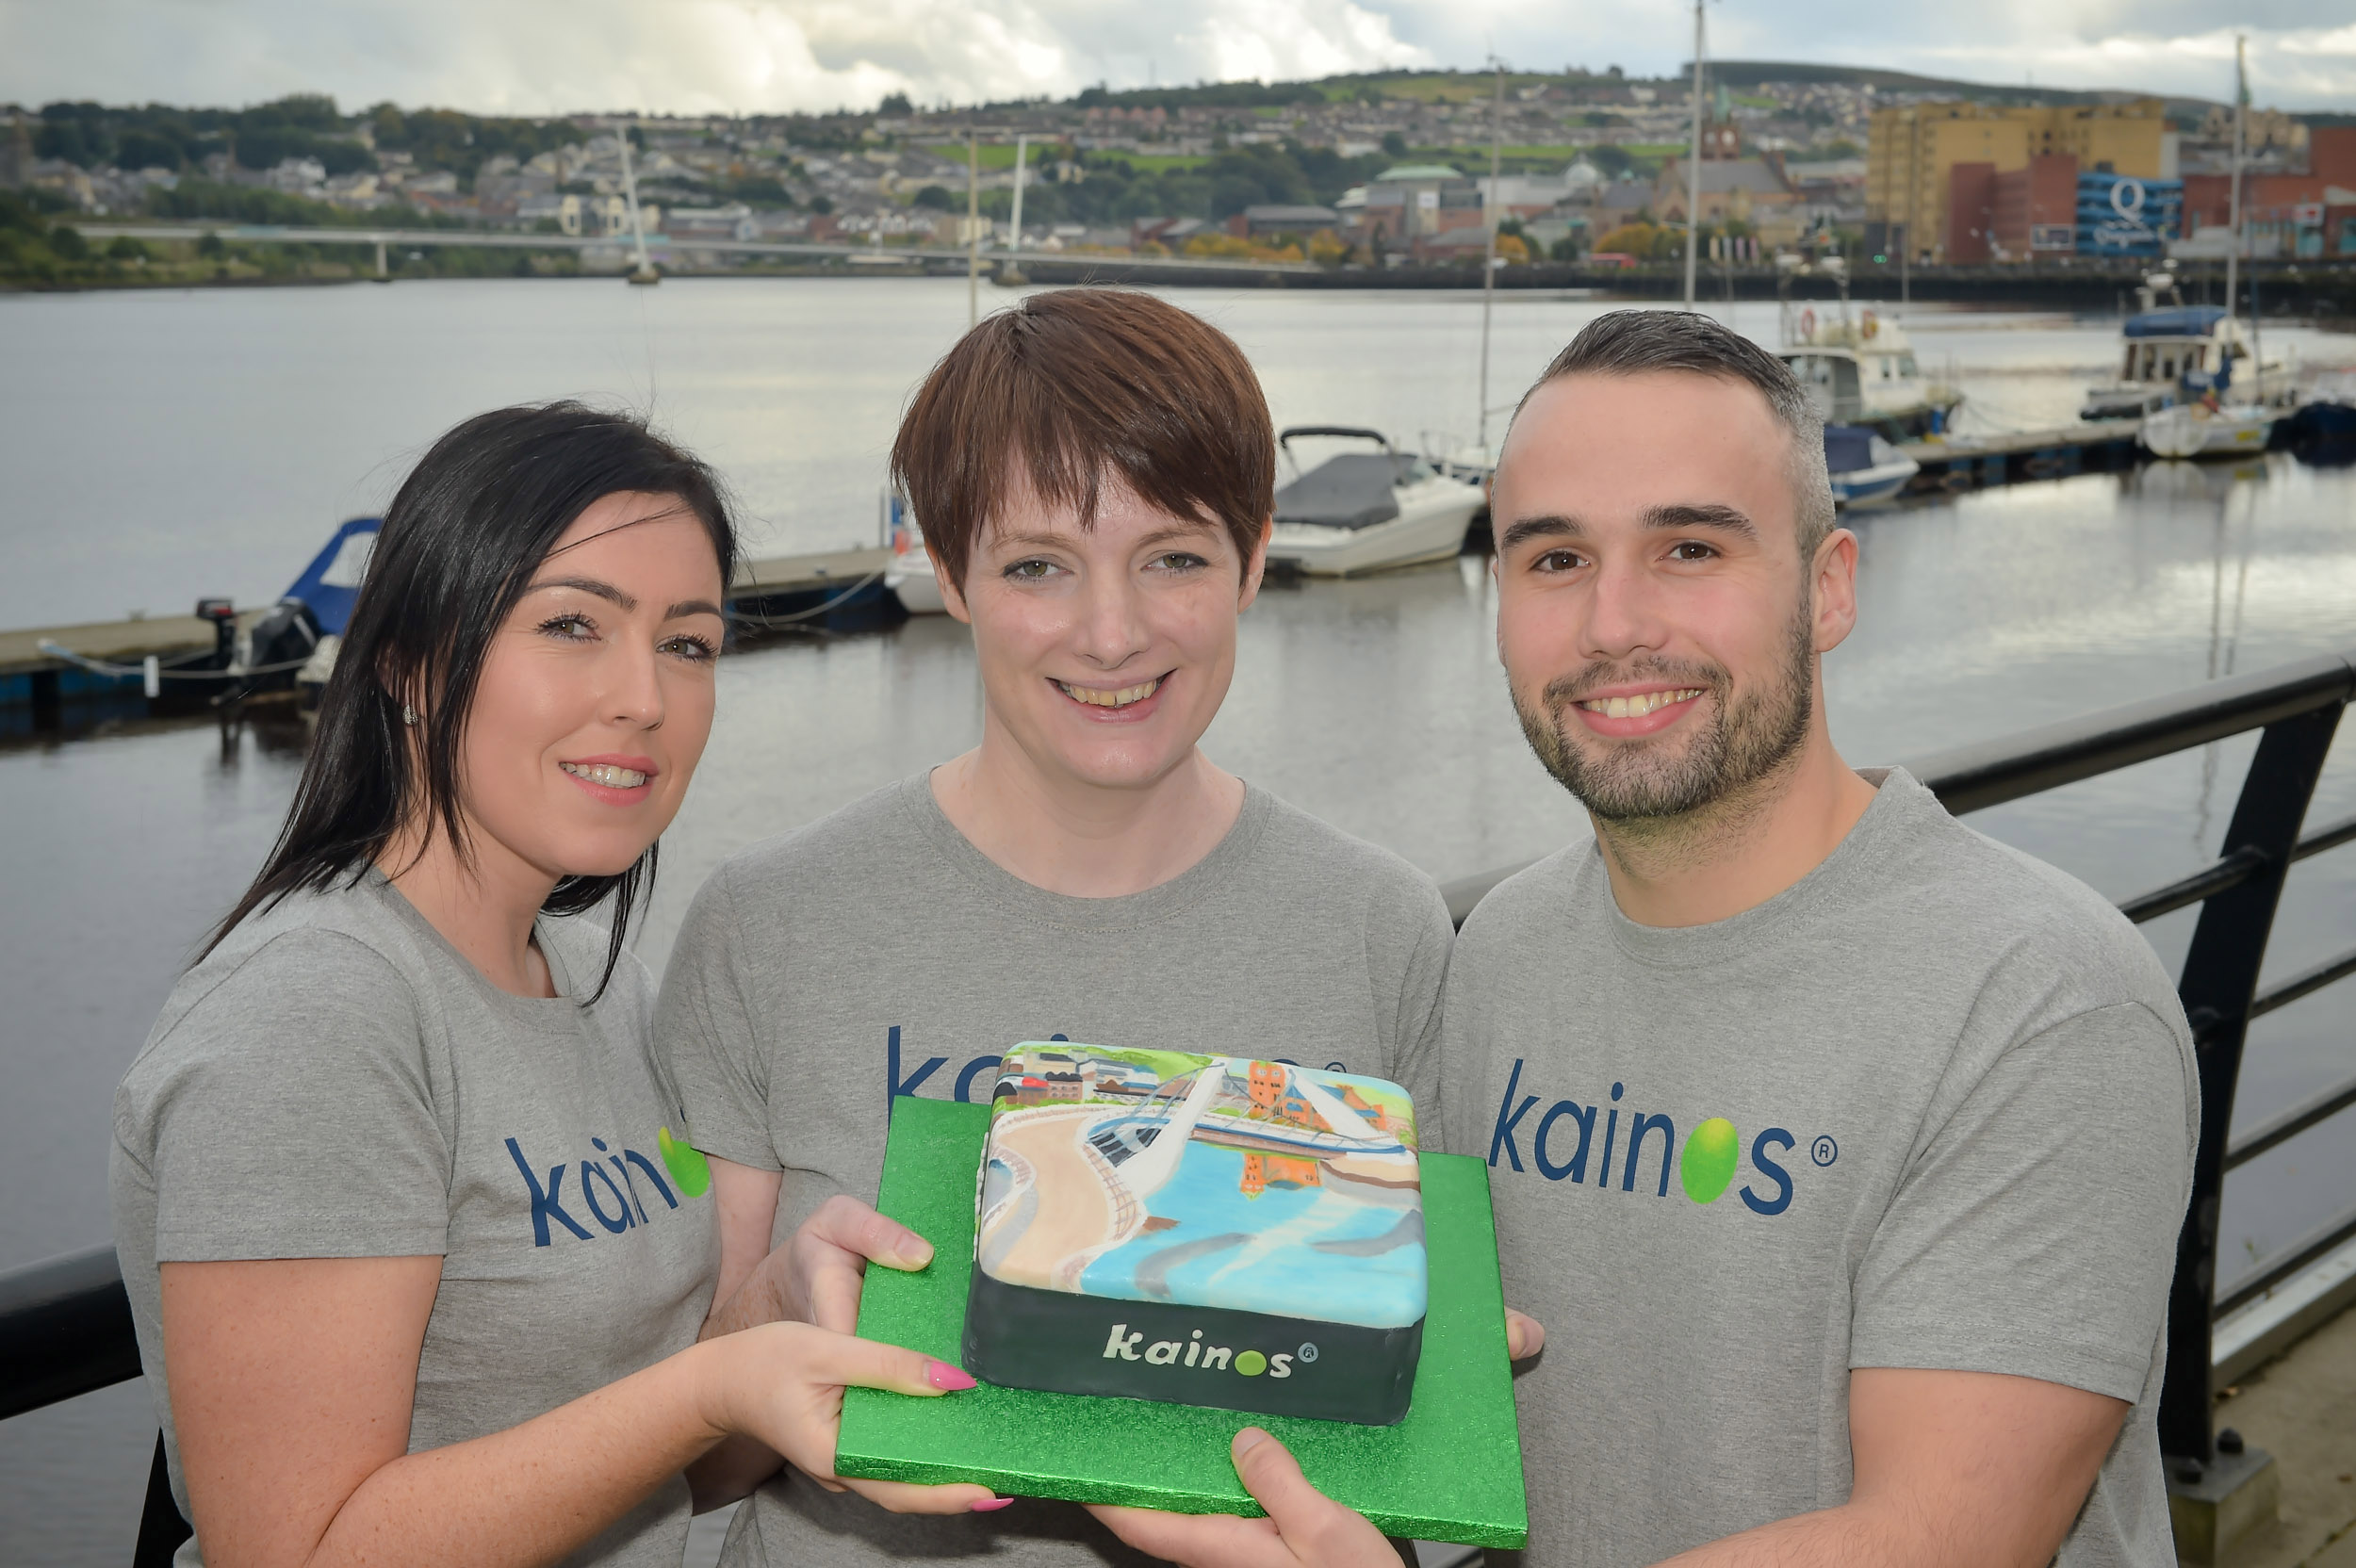 Kainos expands its digital presence in Derry